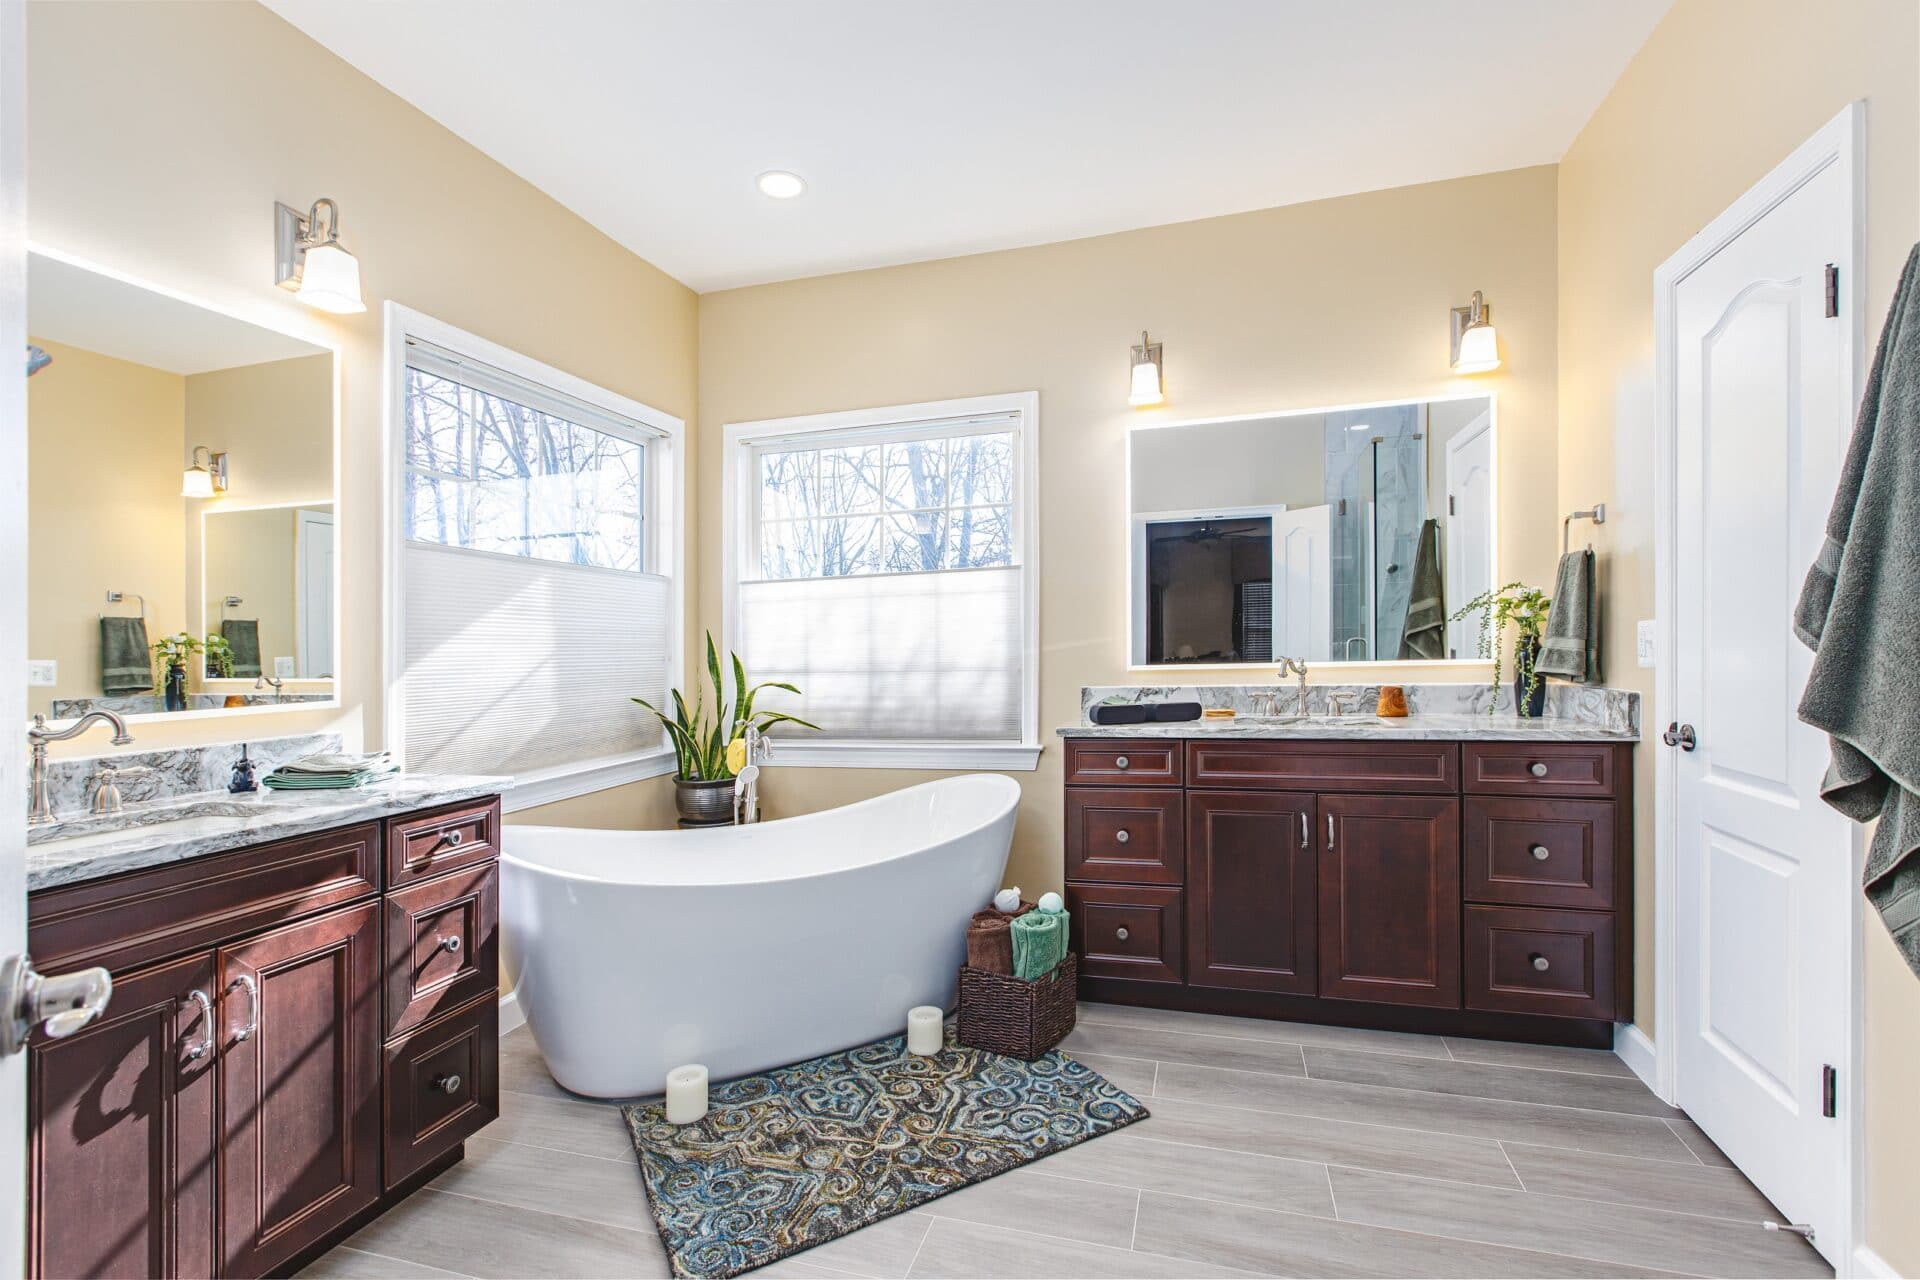 Bathroom remodeling in Ashburn - Craft Kitchen and Bath